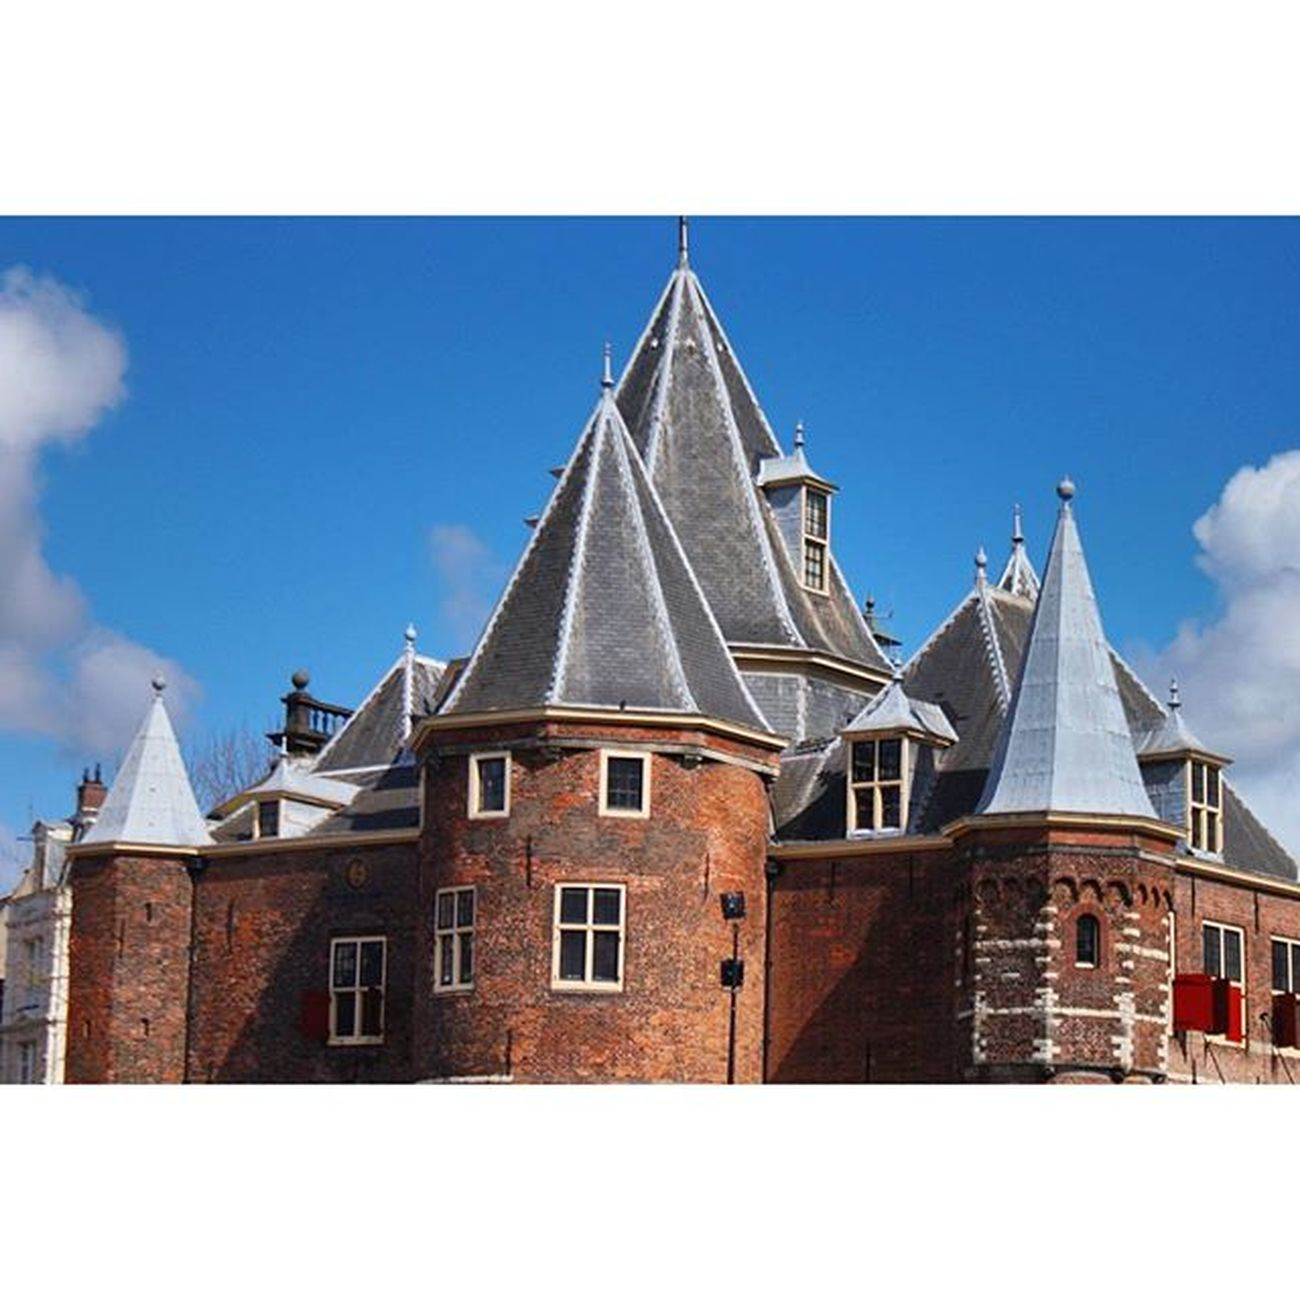 Beautiful Architecture and Design . At the Waag building in NieuwMarkt near the CityCenter centrum. amsterdam holand netherlands niederlande. Taken by my SonyAlpha dslr dslt a57 . تصميم معمار مبنى امستردام هولندا